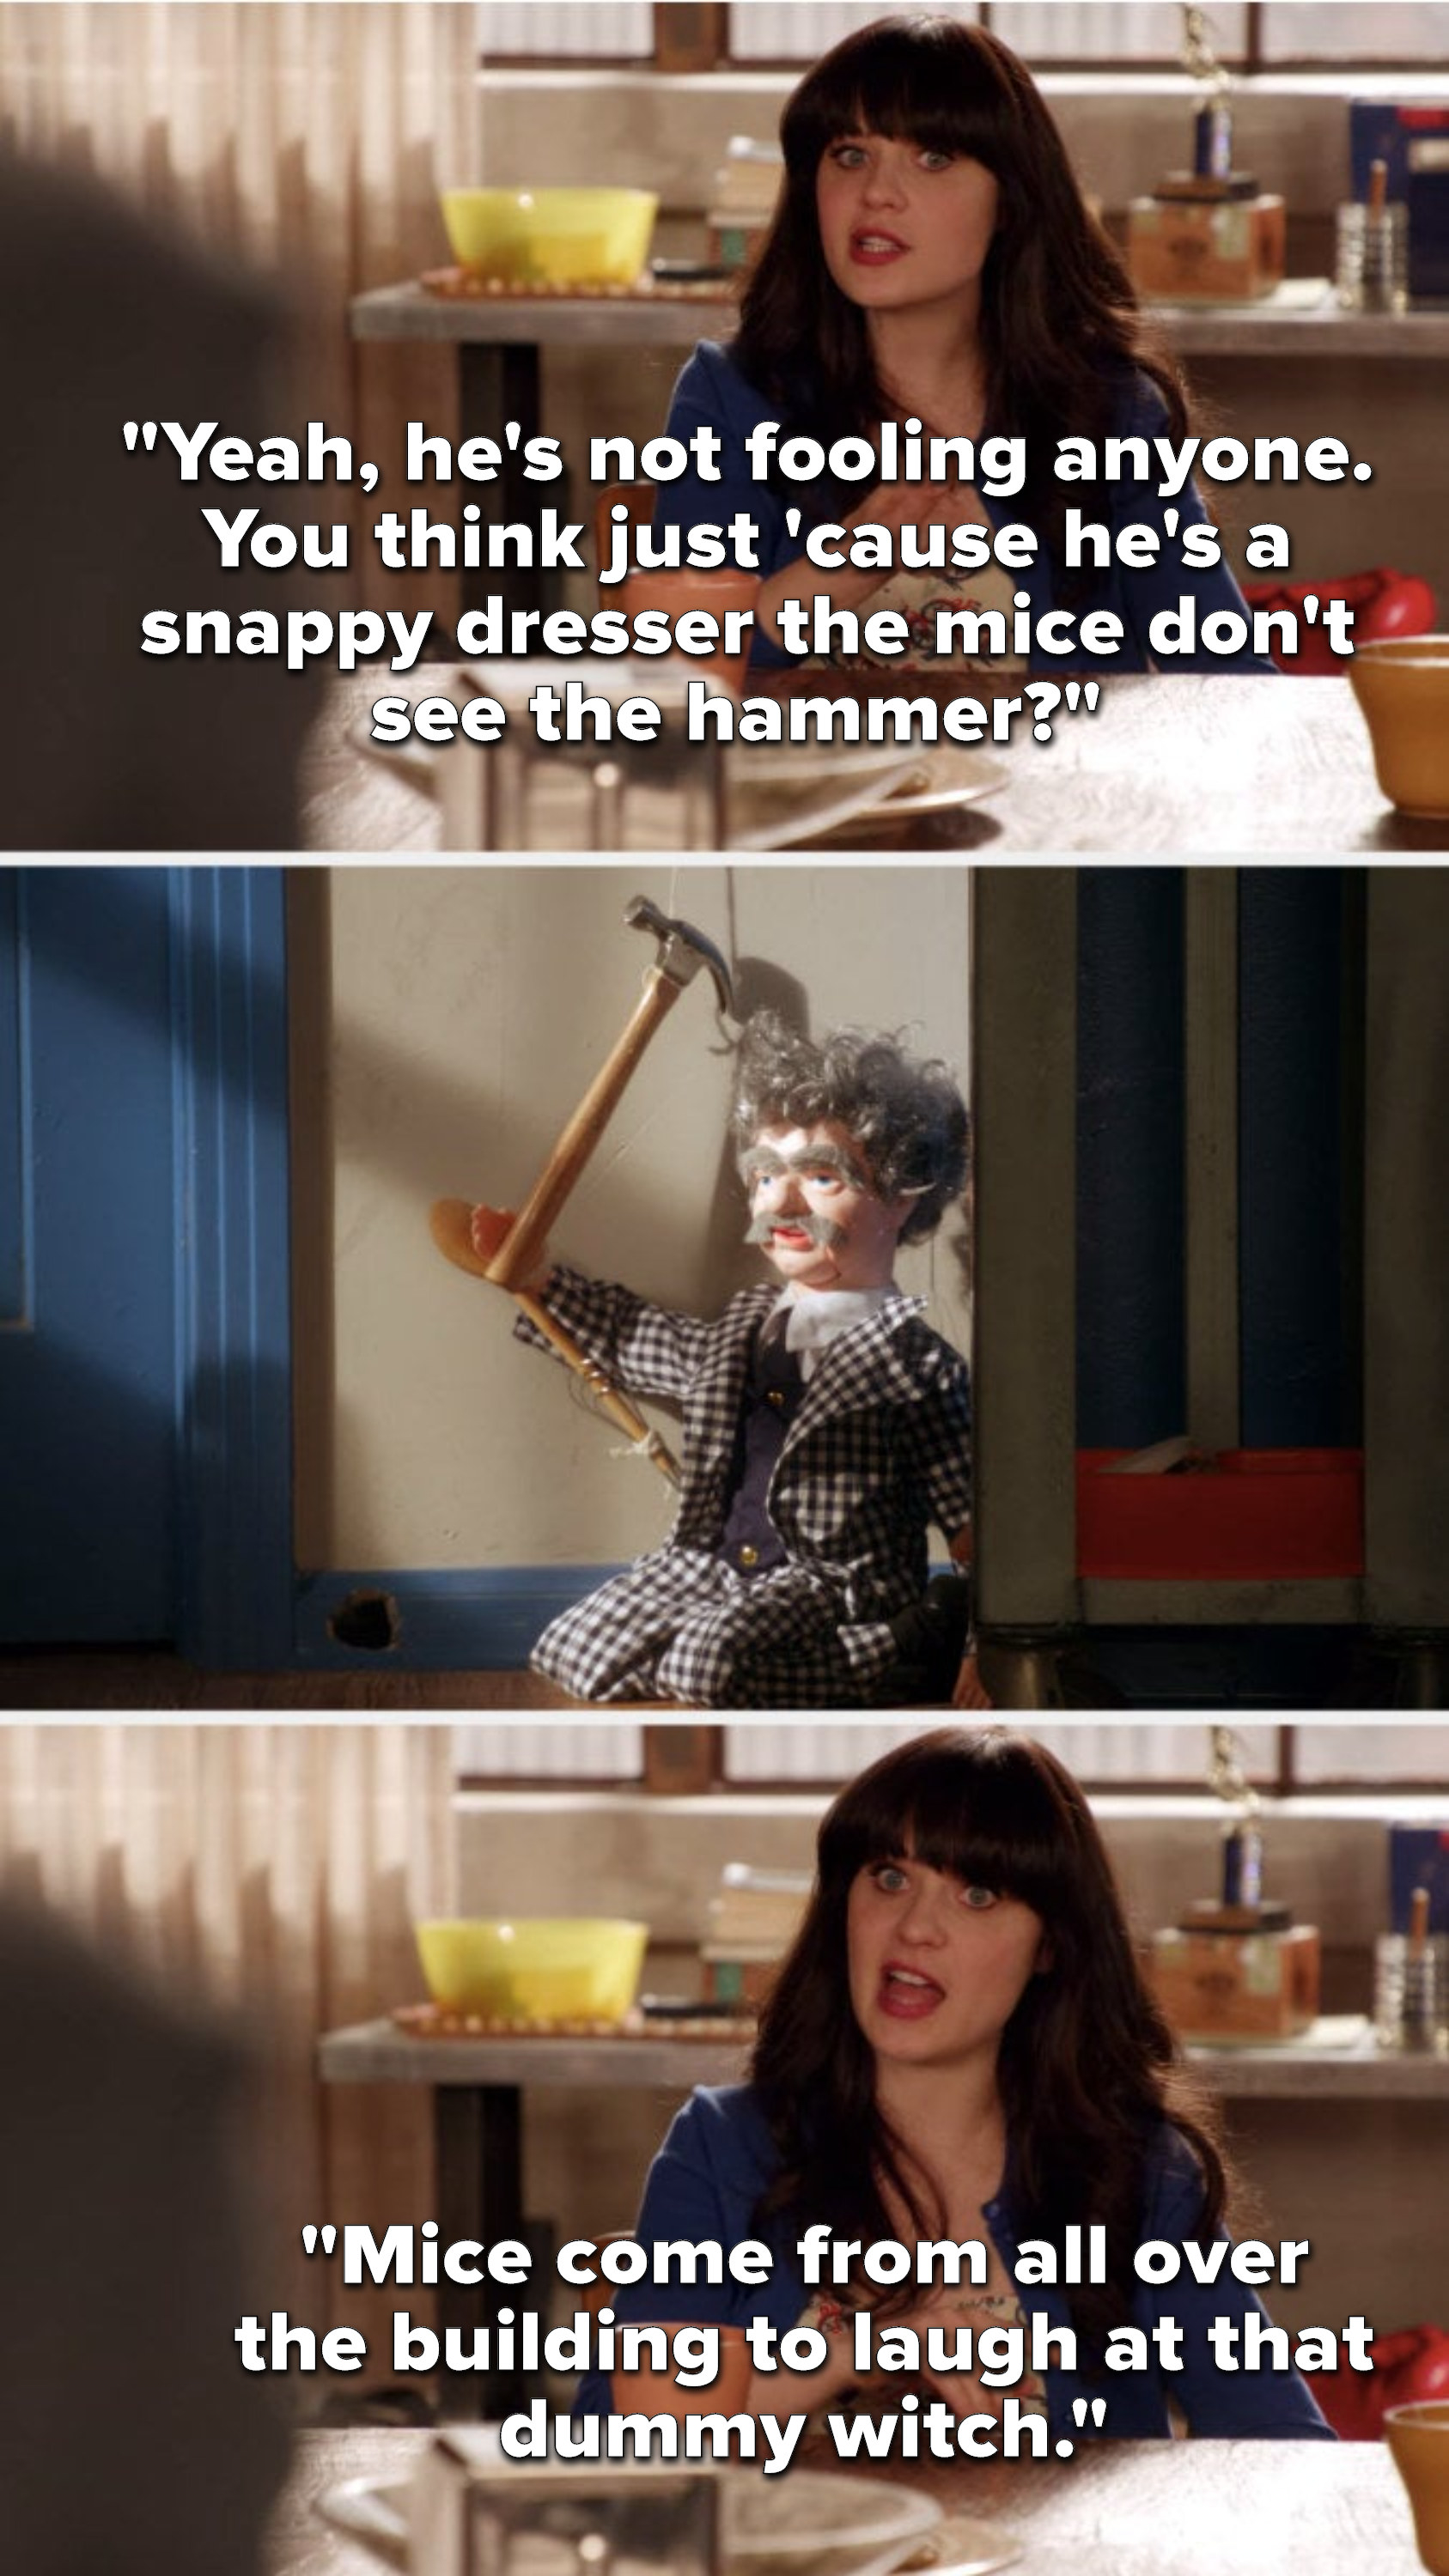 In reference to a doll holding a hammer on the floor, Jess says, Yeah, he's not fooling anyone, You think just cause he's a snappy dresser the mice don't see the hammer, Mice come from all over the building to laugh at that dummy witch